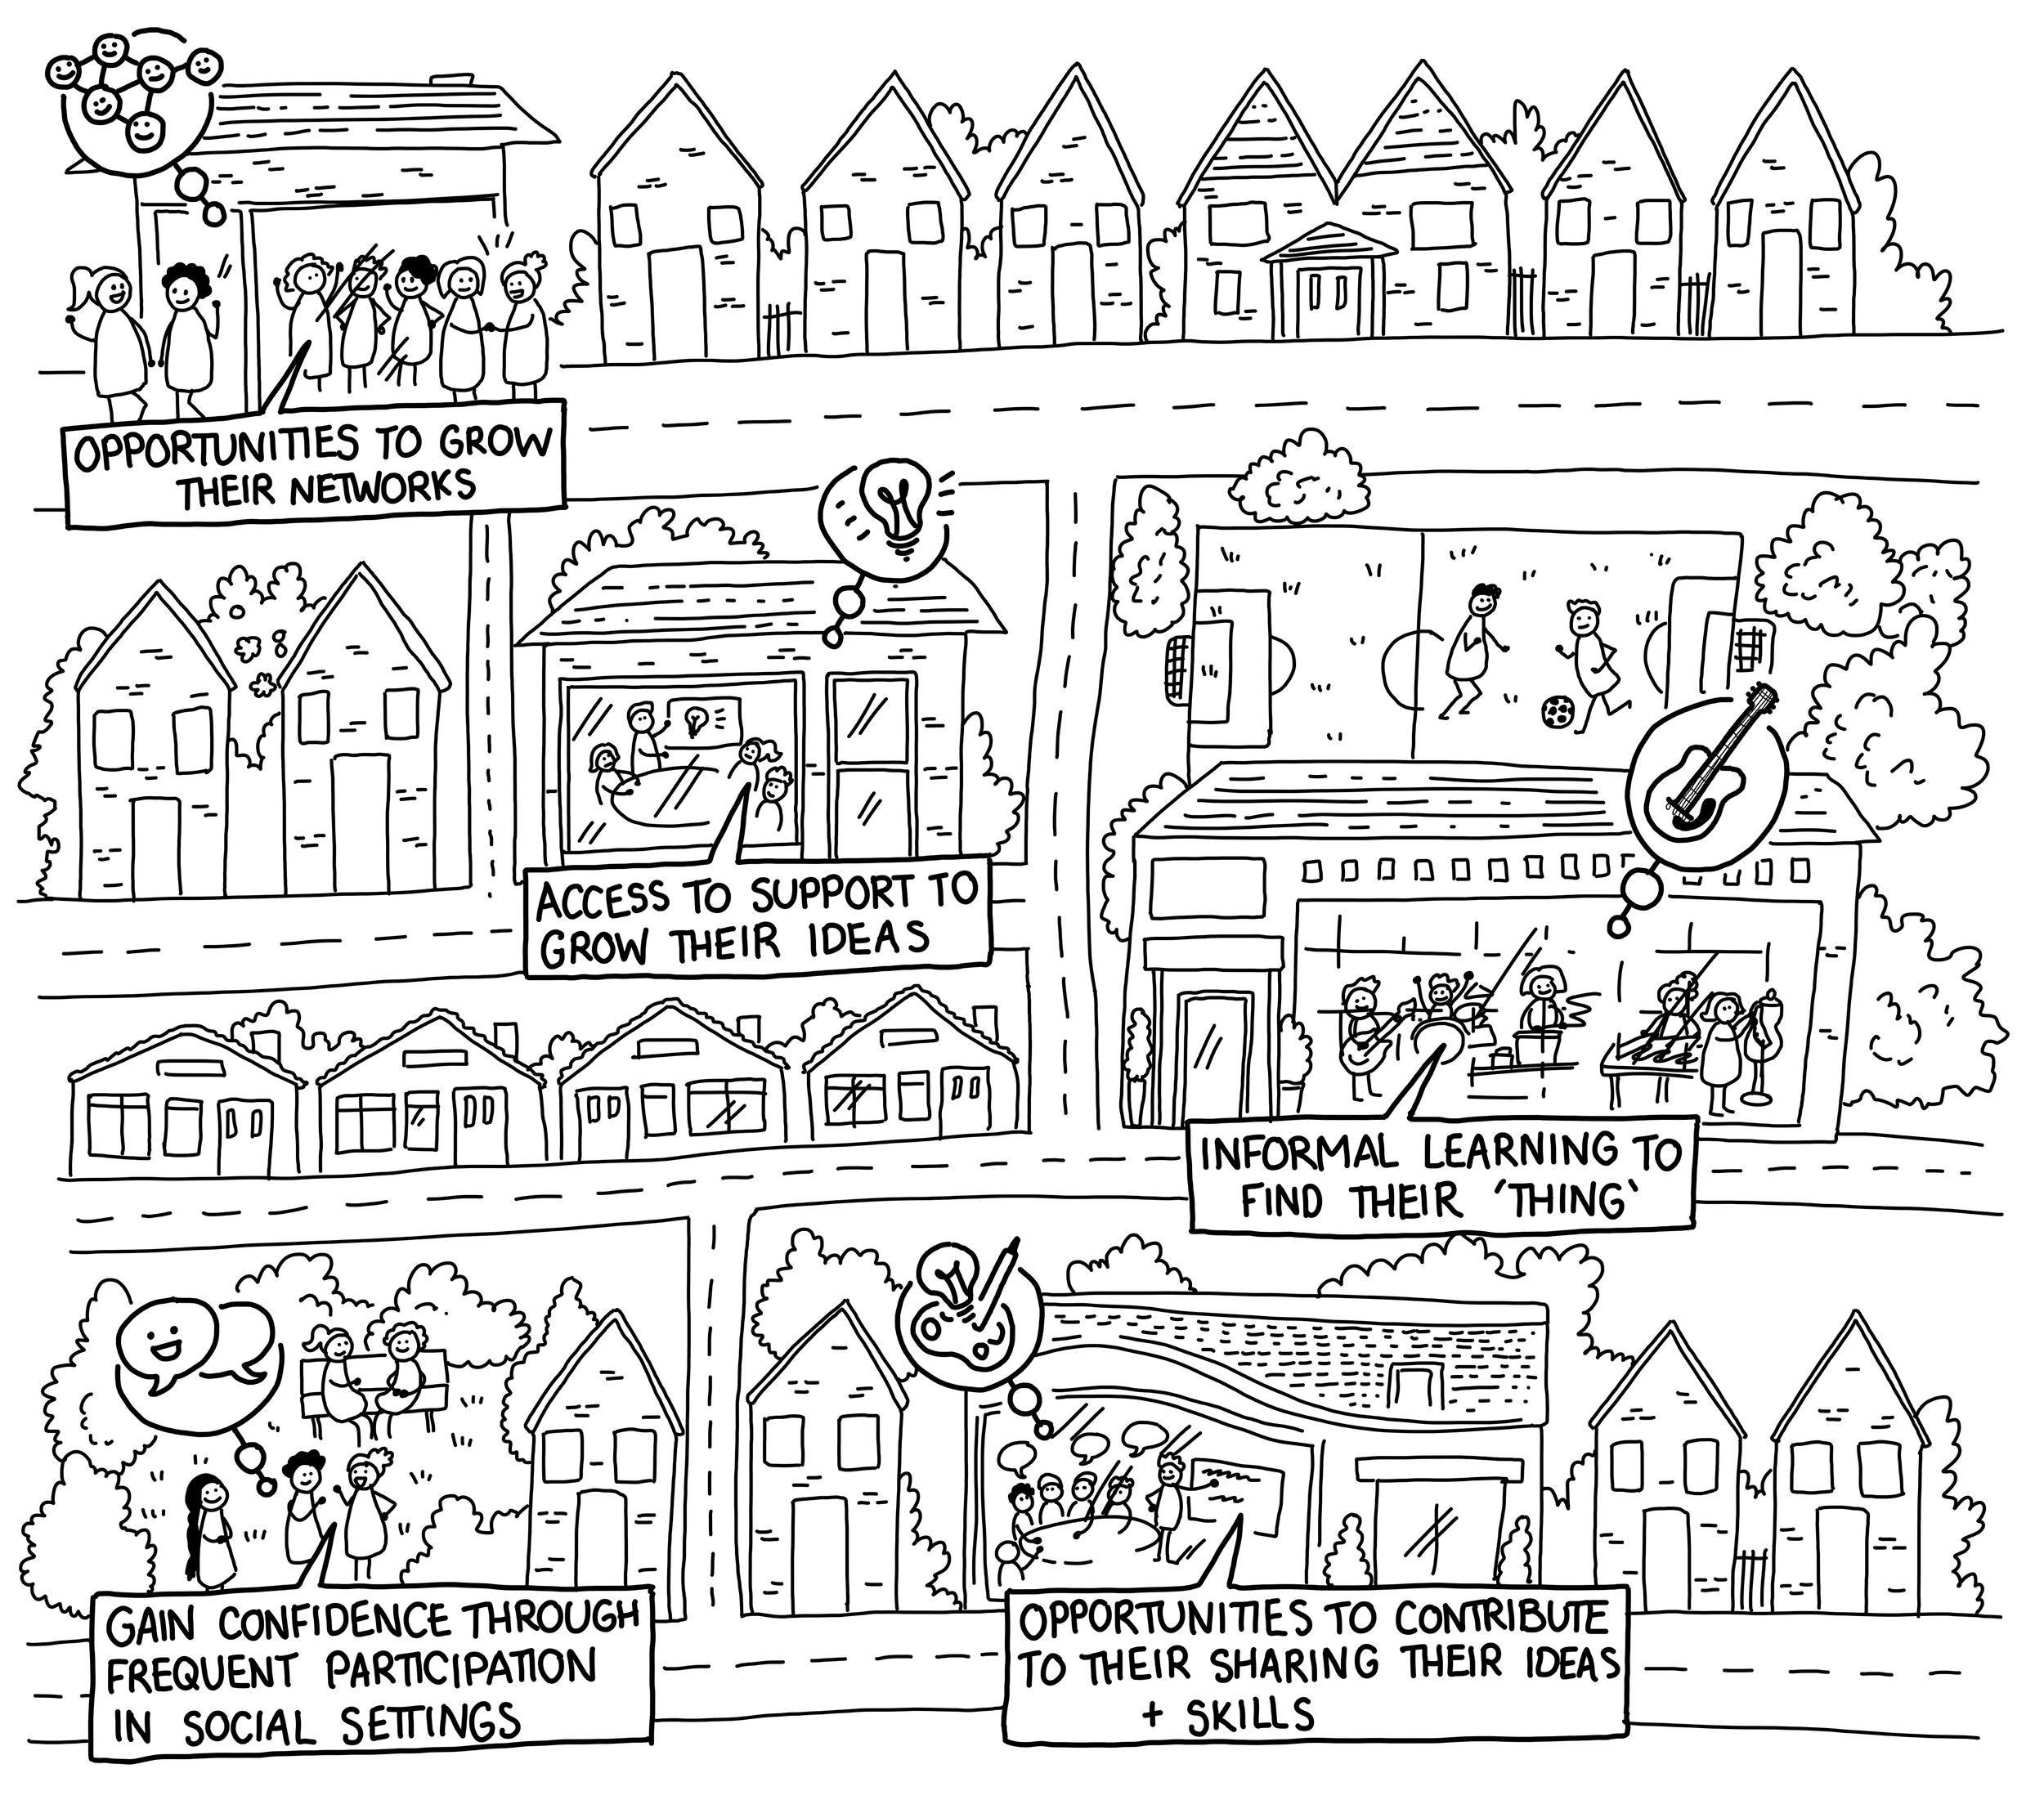 ParticipatoryCity_Townscapes_YoungPeople_v2.jpg